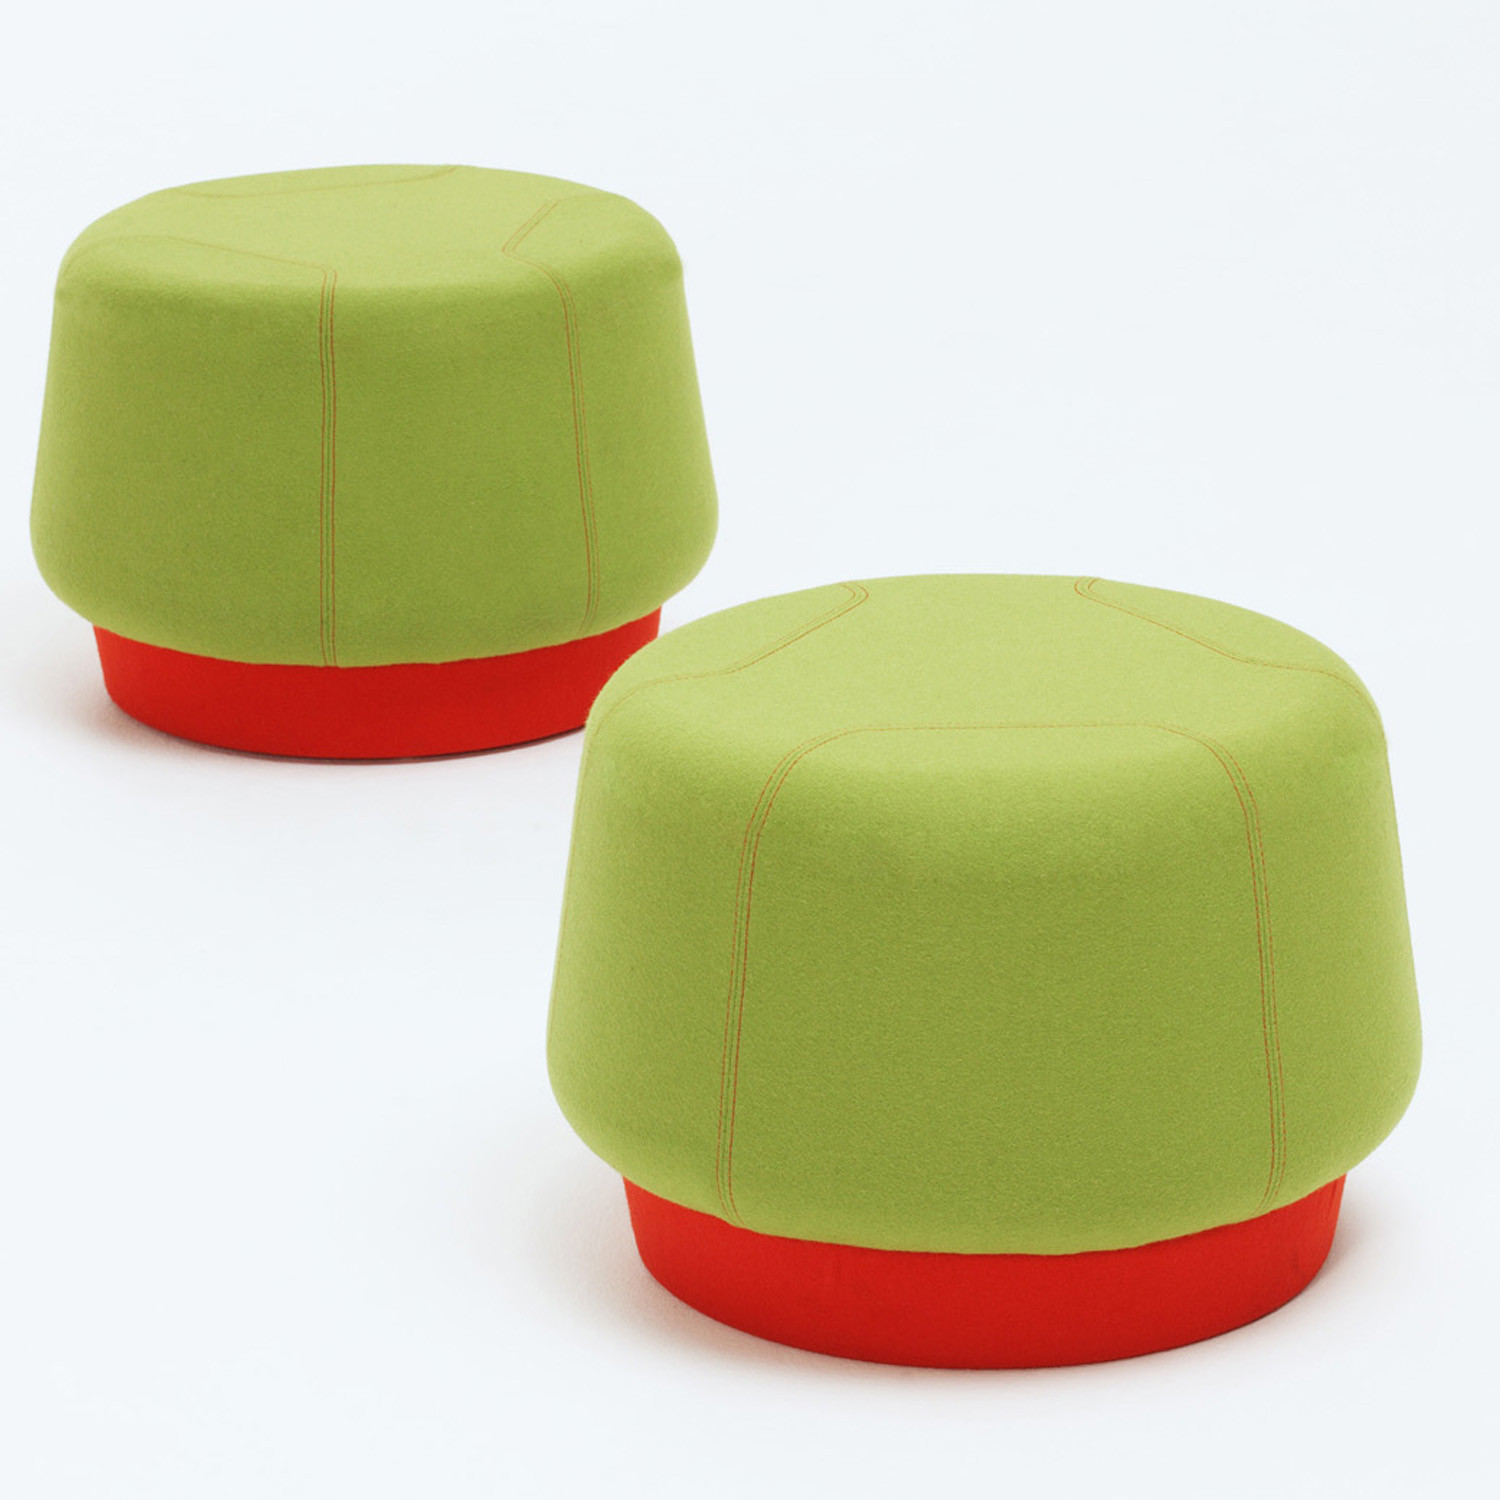 MIR Upholstered Stools